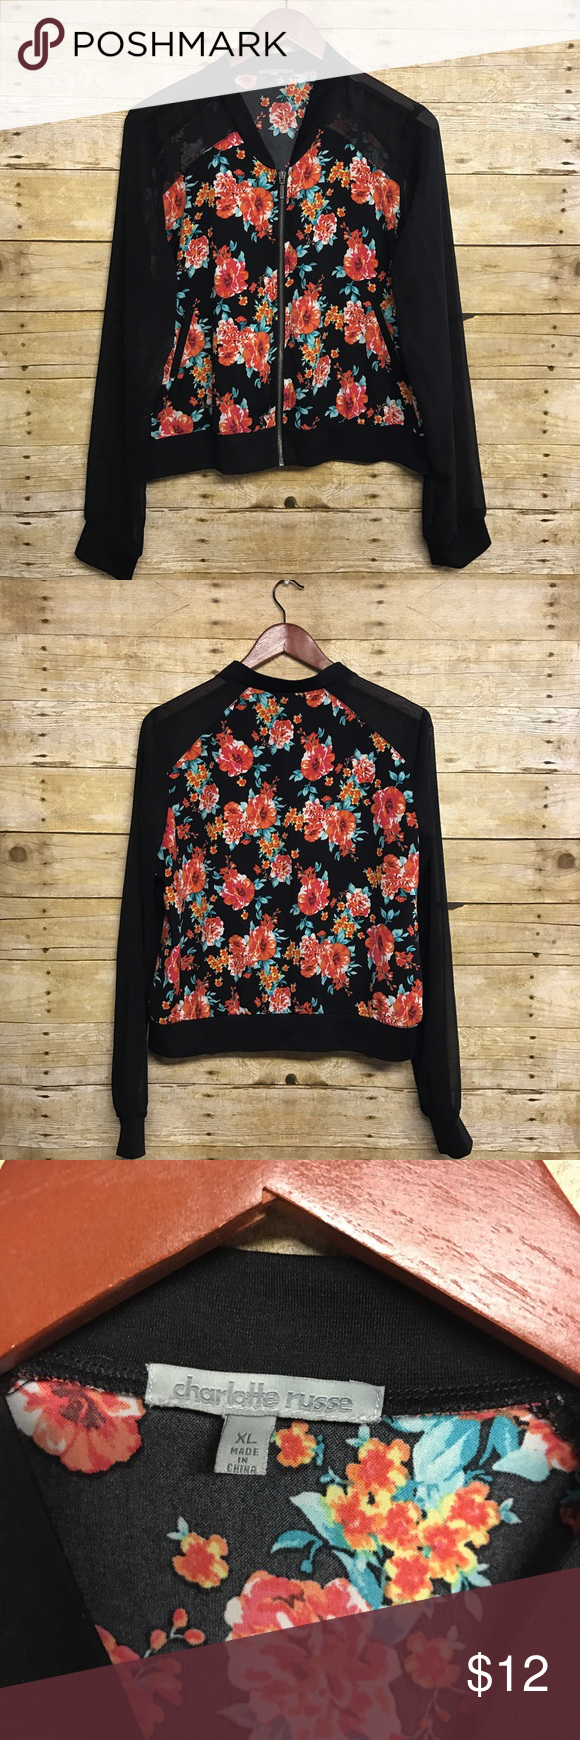 Floral sheer bomber/varsity jacket XL Super cute Charlotte Russe bomber/varsity style jacket with sheer sleeves and Floral pattern. Size XL but fits more like a large. Charlotte Russe Jackets & Coats